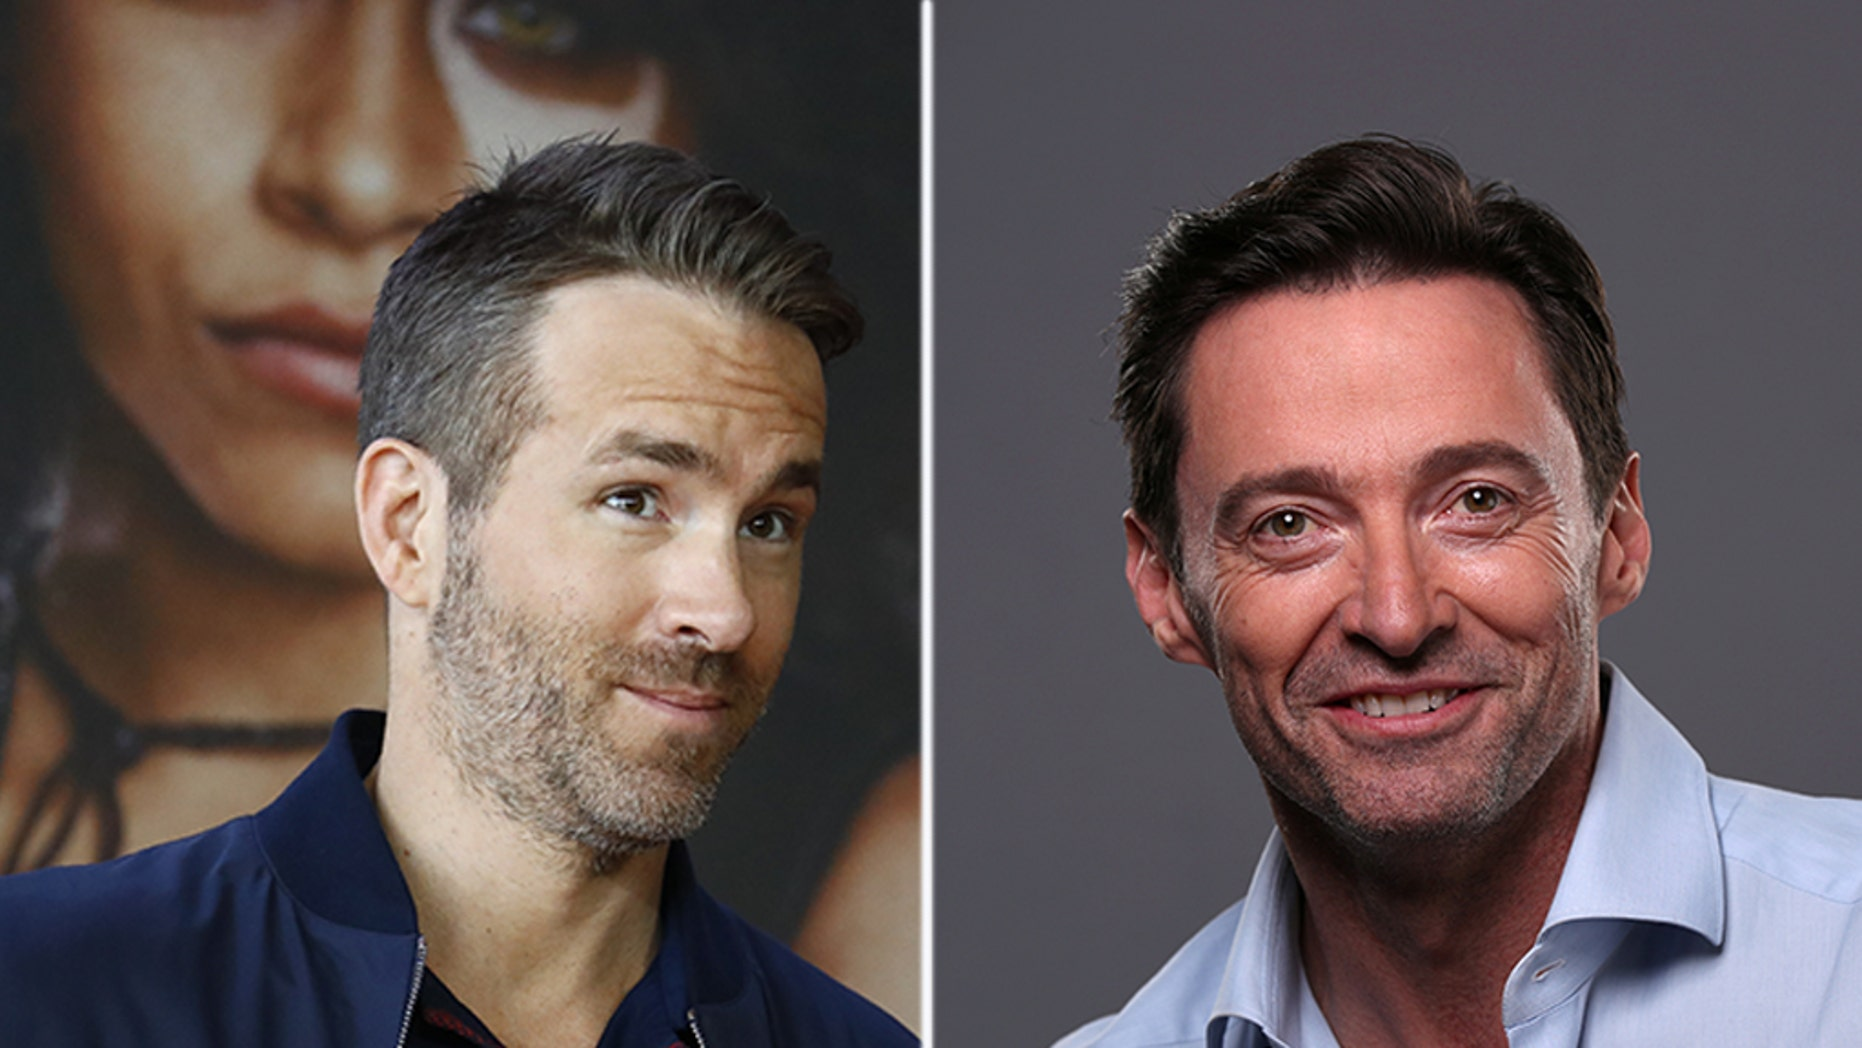 Ryan Reynolds trolls Hugh Jackman in fake political ad